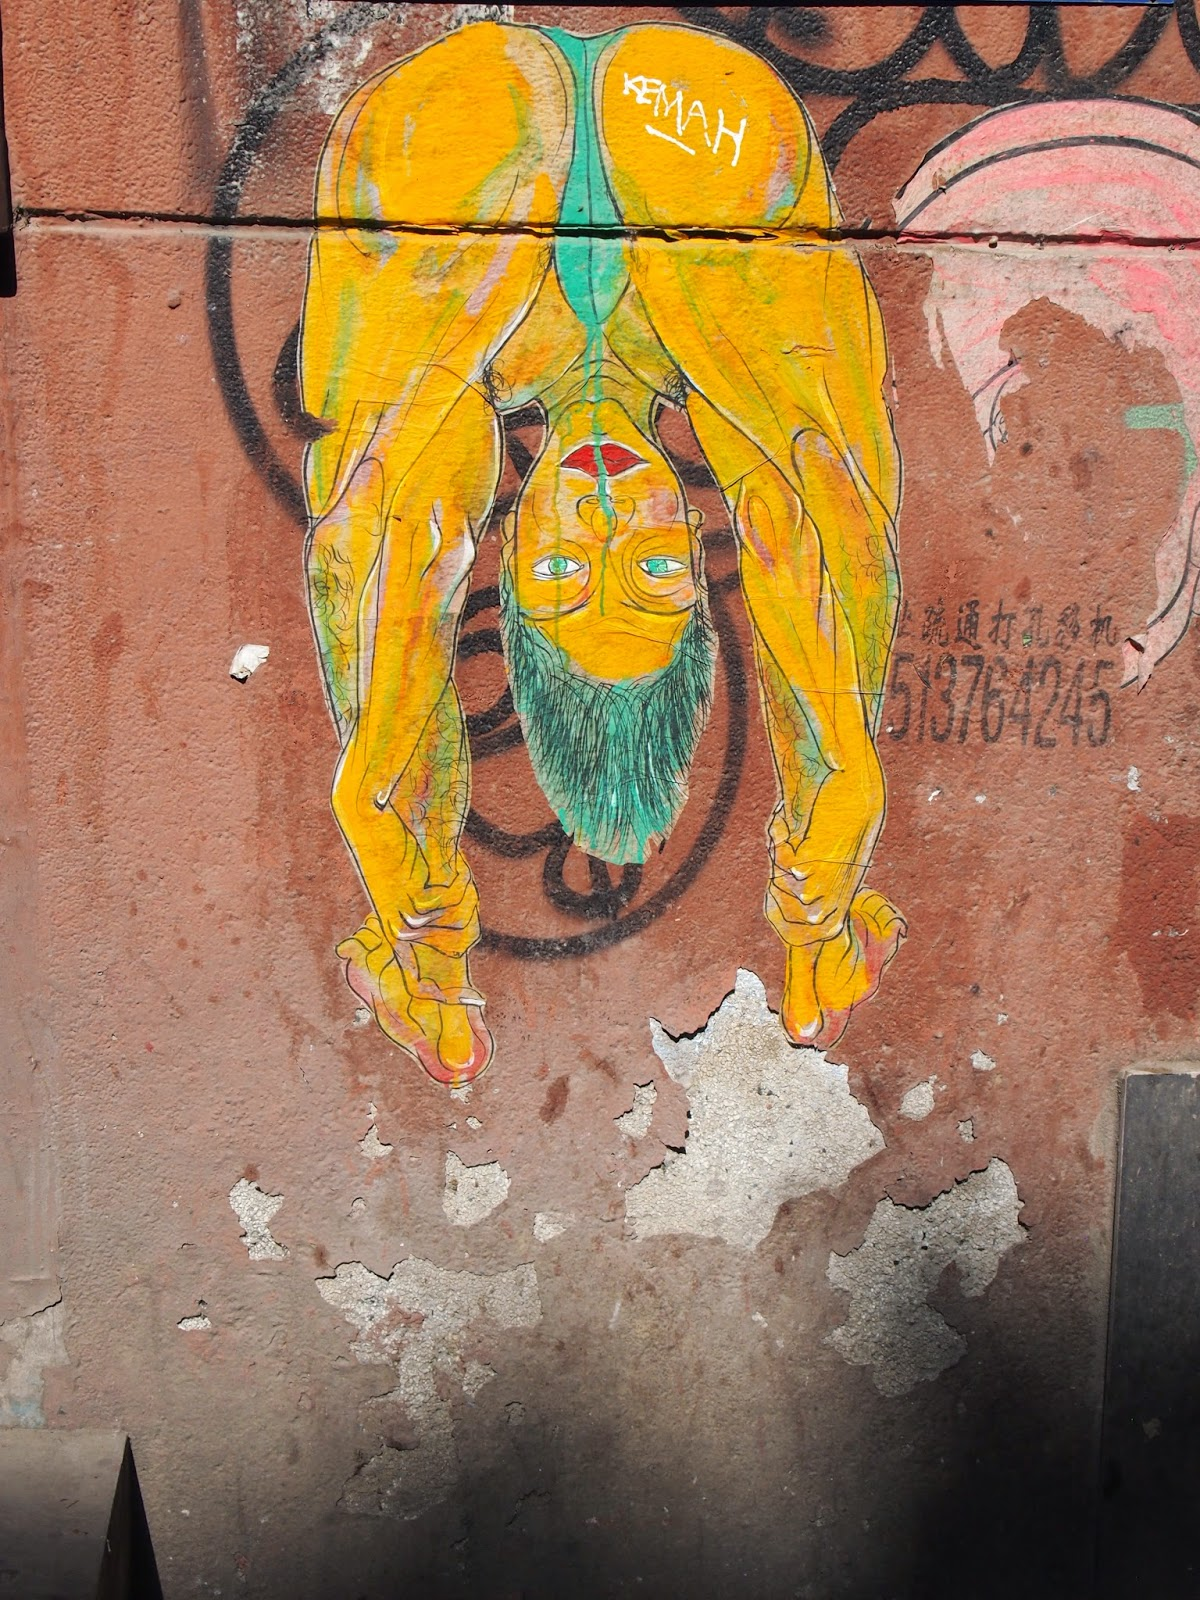 street art of a mostly nude yellow man